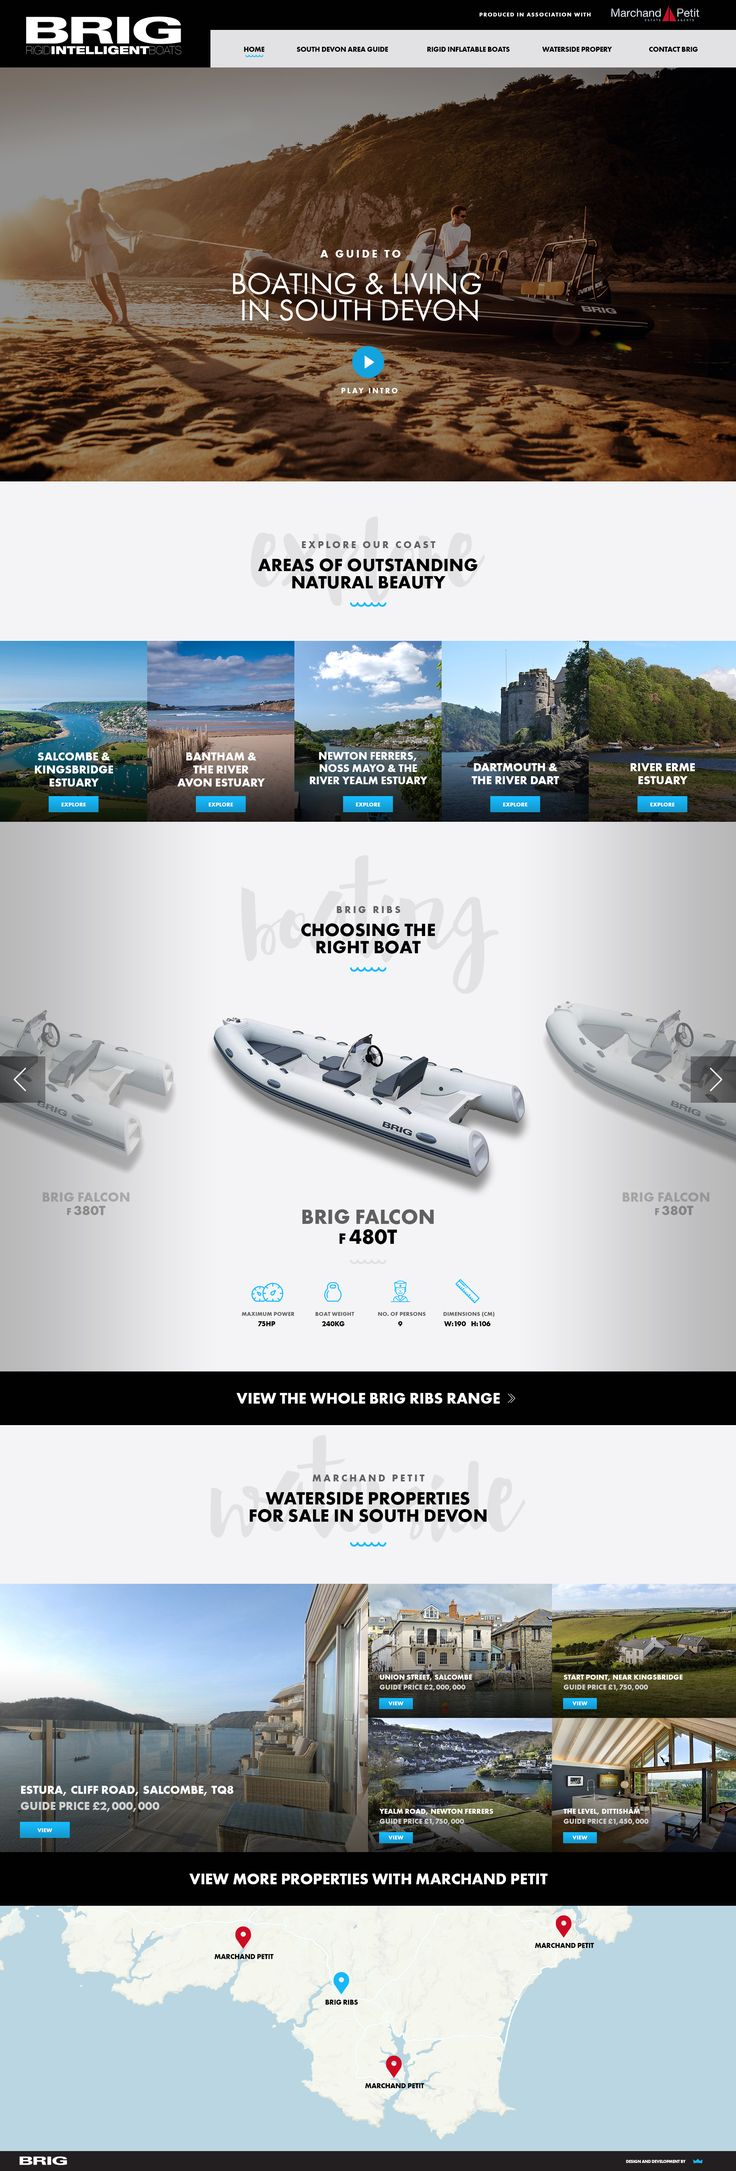 Web Design Inspiration. Concept for a South Devon Area Guide in collaboration with BRIG - Rigid Inflatable Boats and Marchand Petit estate agents.